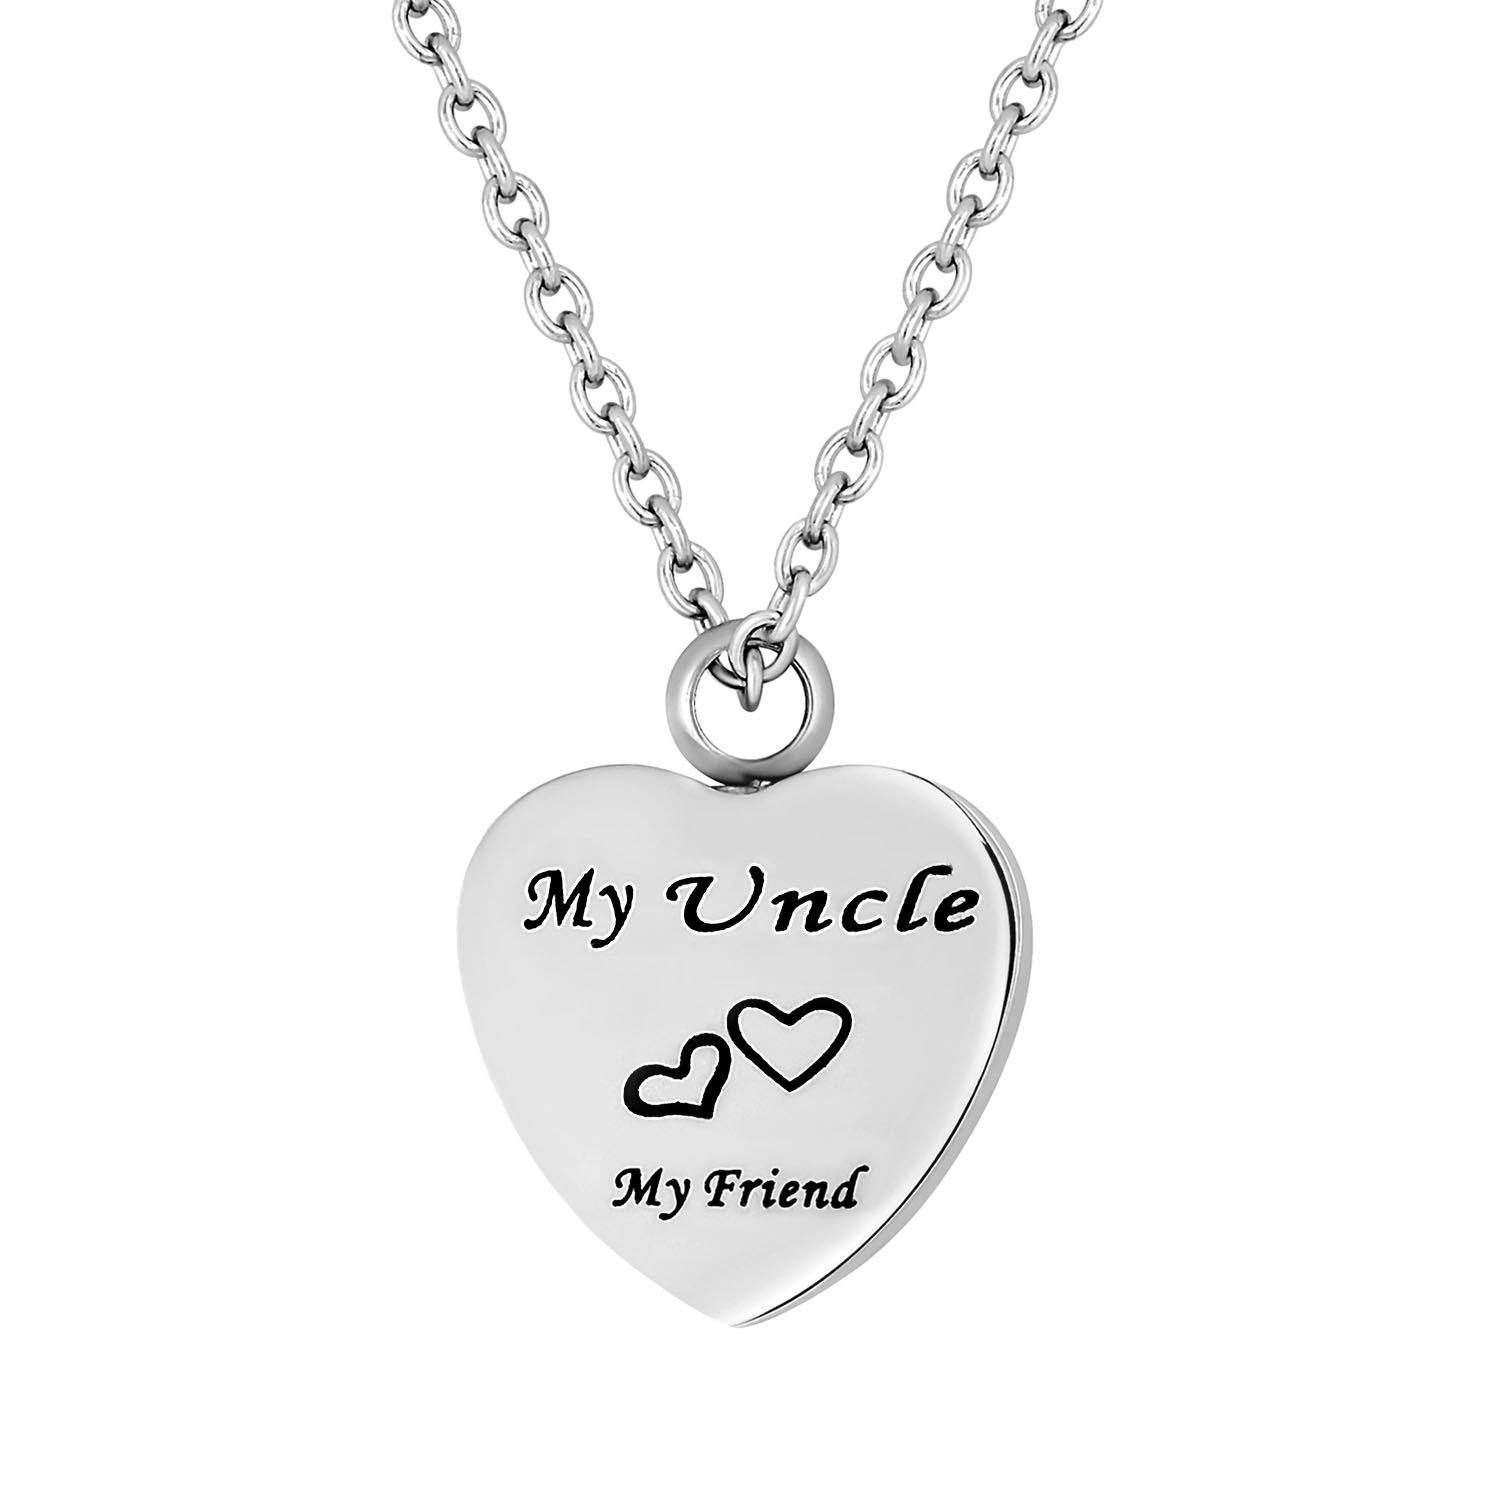 Cremation Jewelry Necklace for Ashes - My Uncle